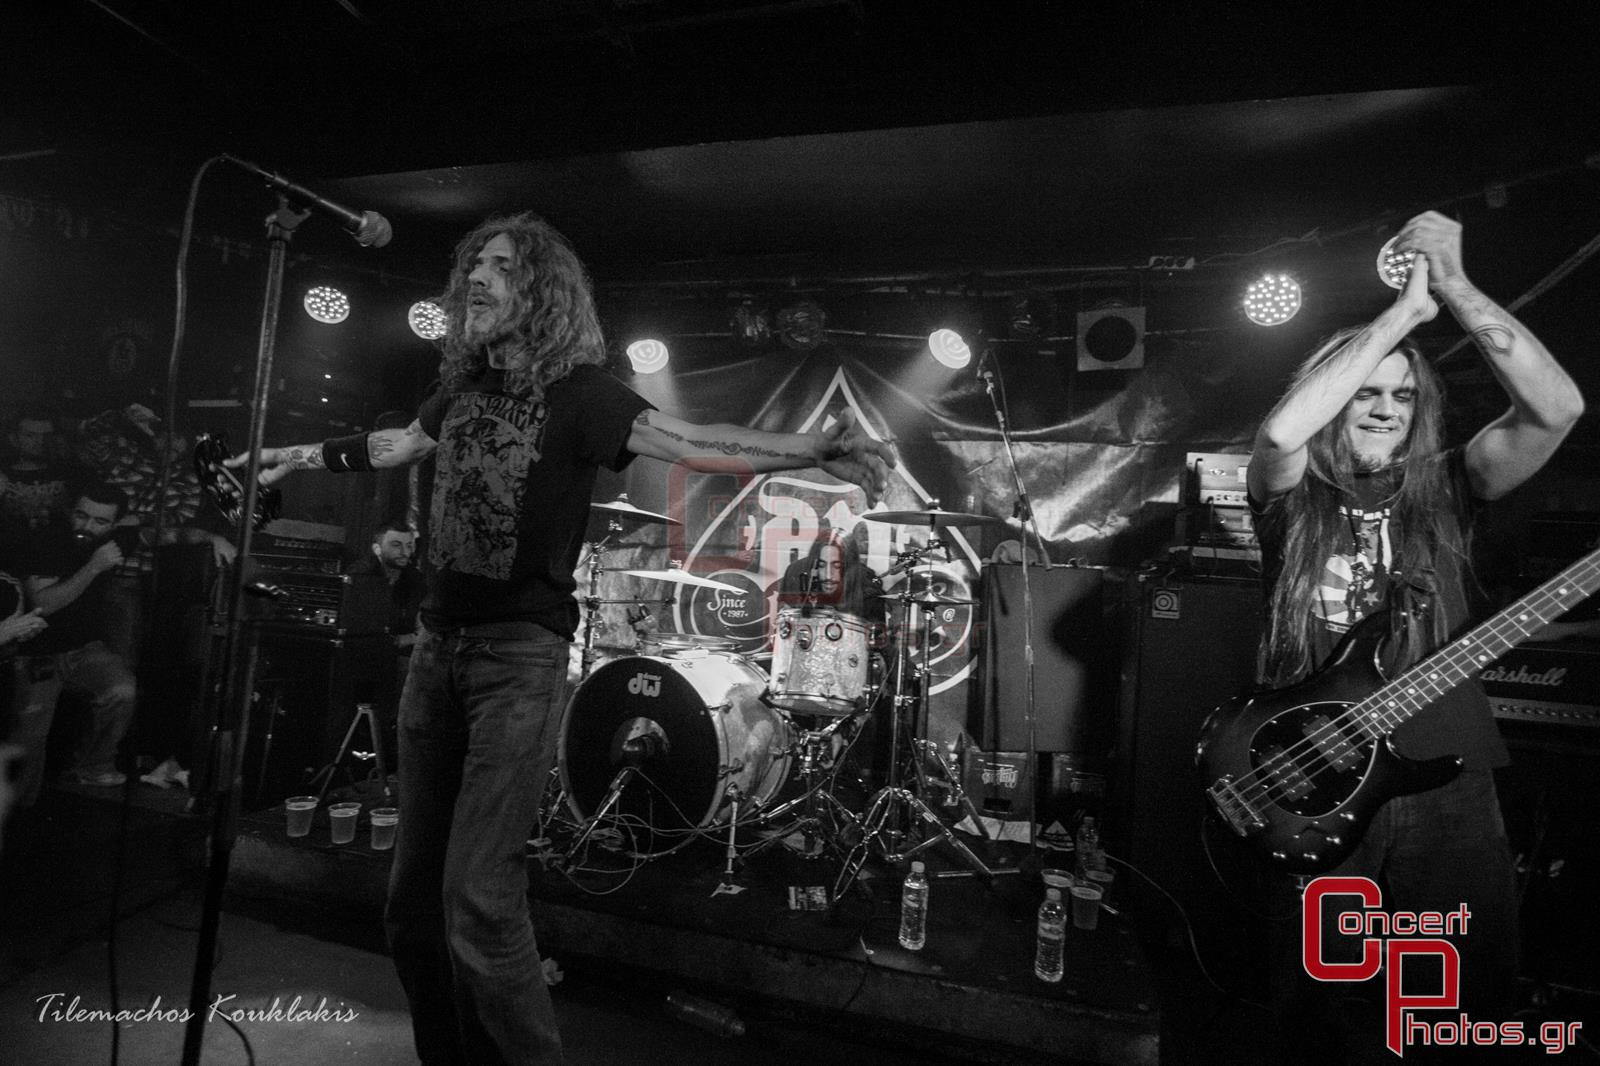 Nightstalker-Nightstalker AN Club photographer:  - concertphotos_-50